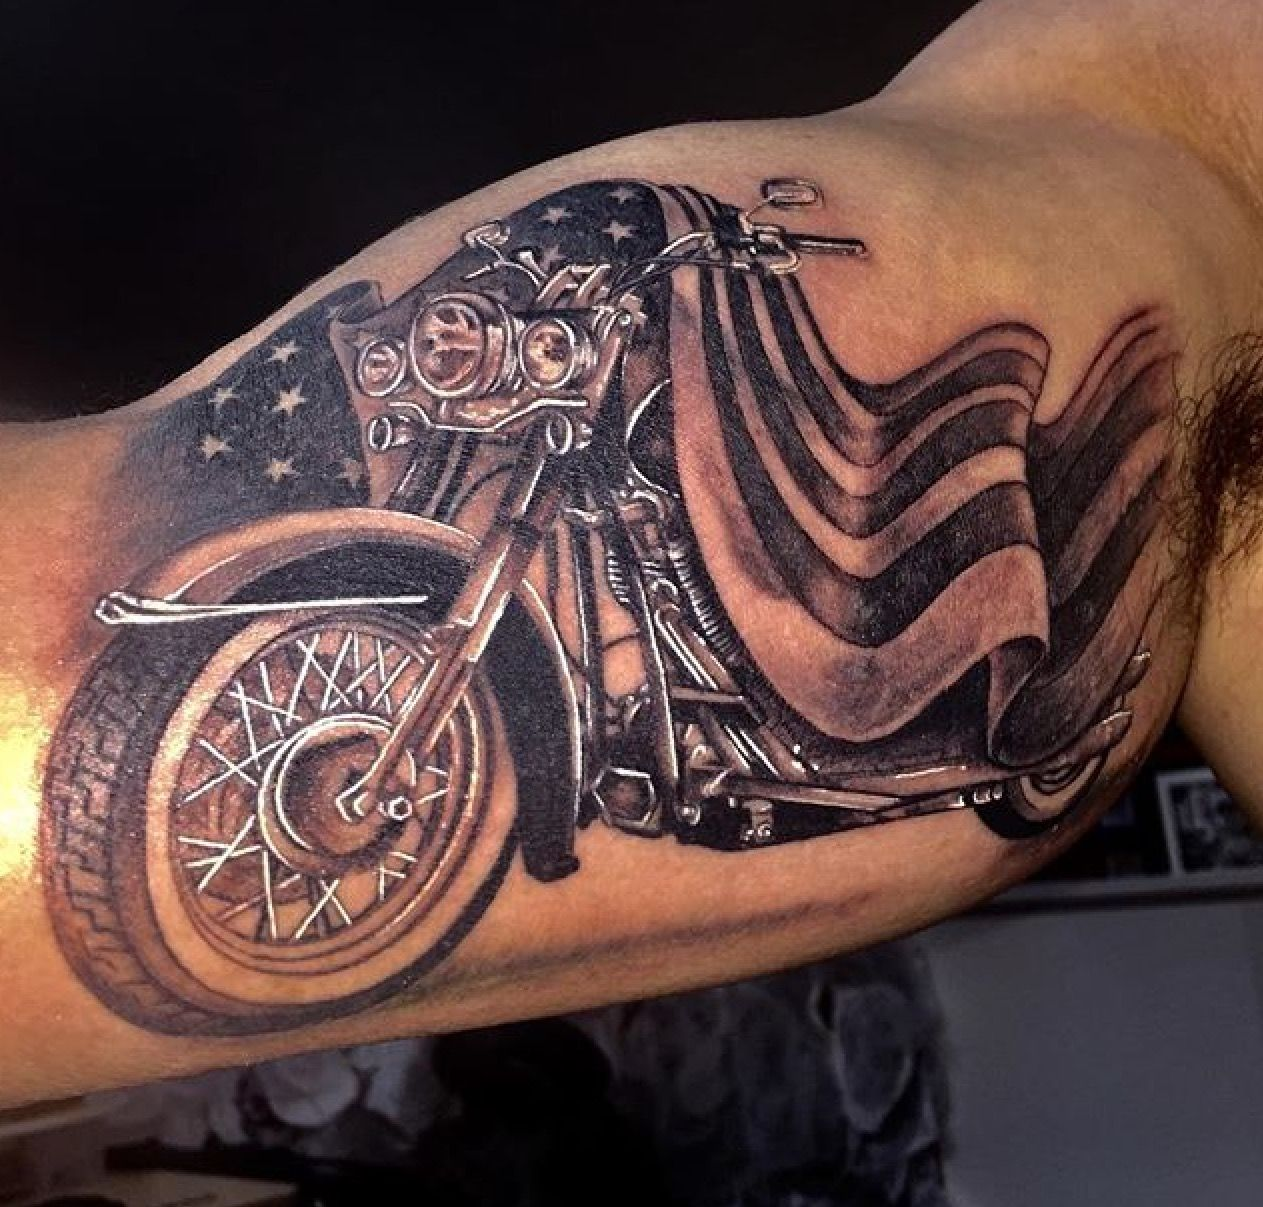 Route 66 tattoo picture at checkoutmyink com - Tattoo